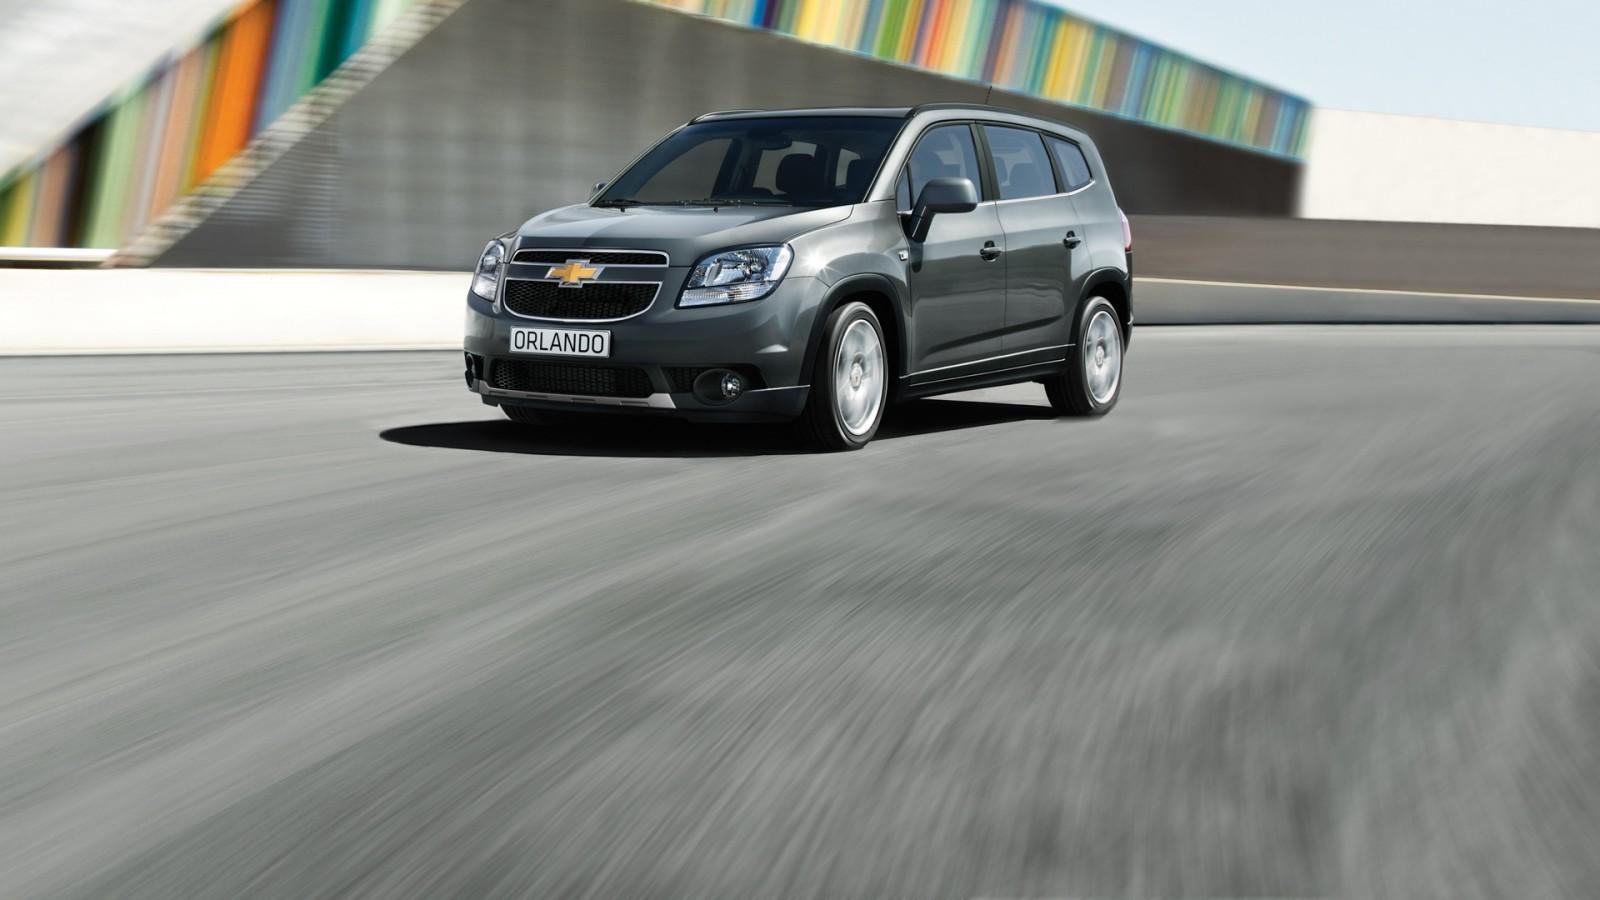 chevrolet wallpaper (chevrolet orlando)